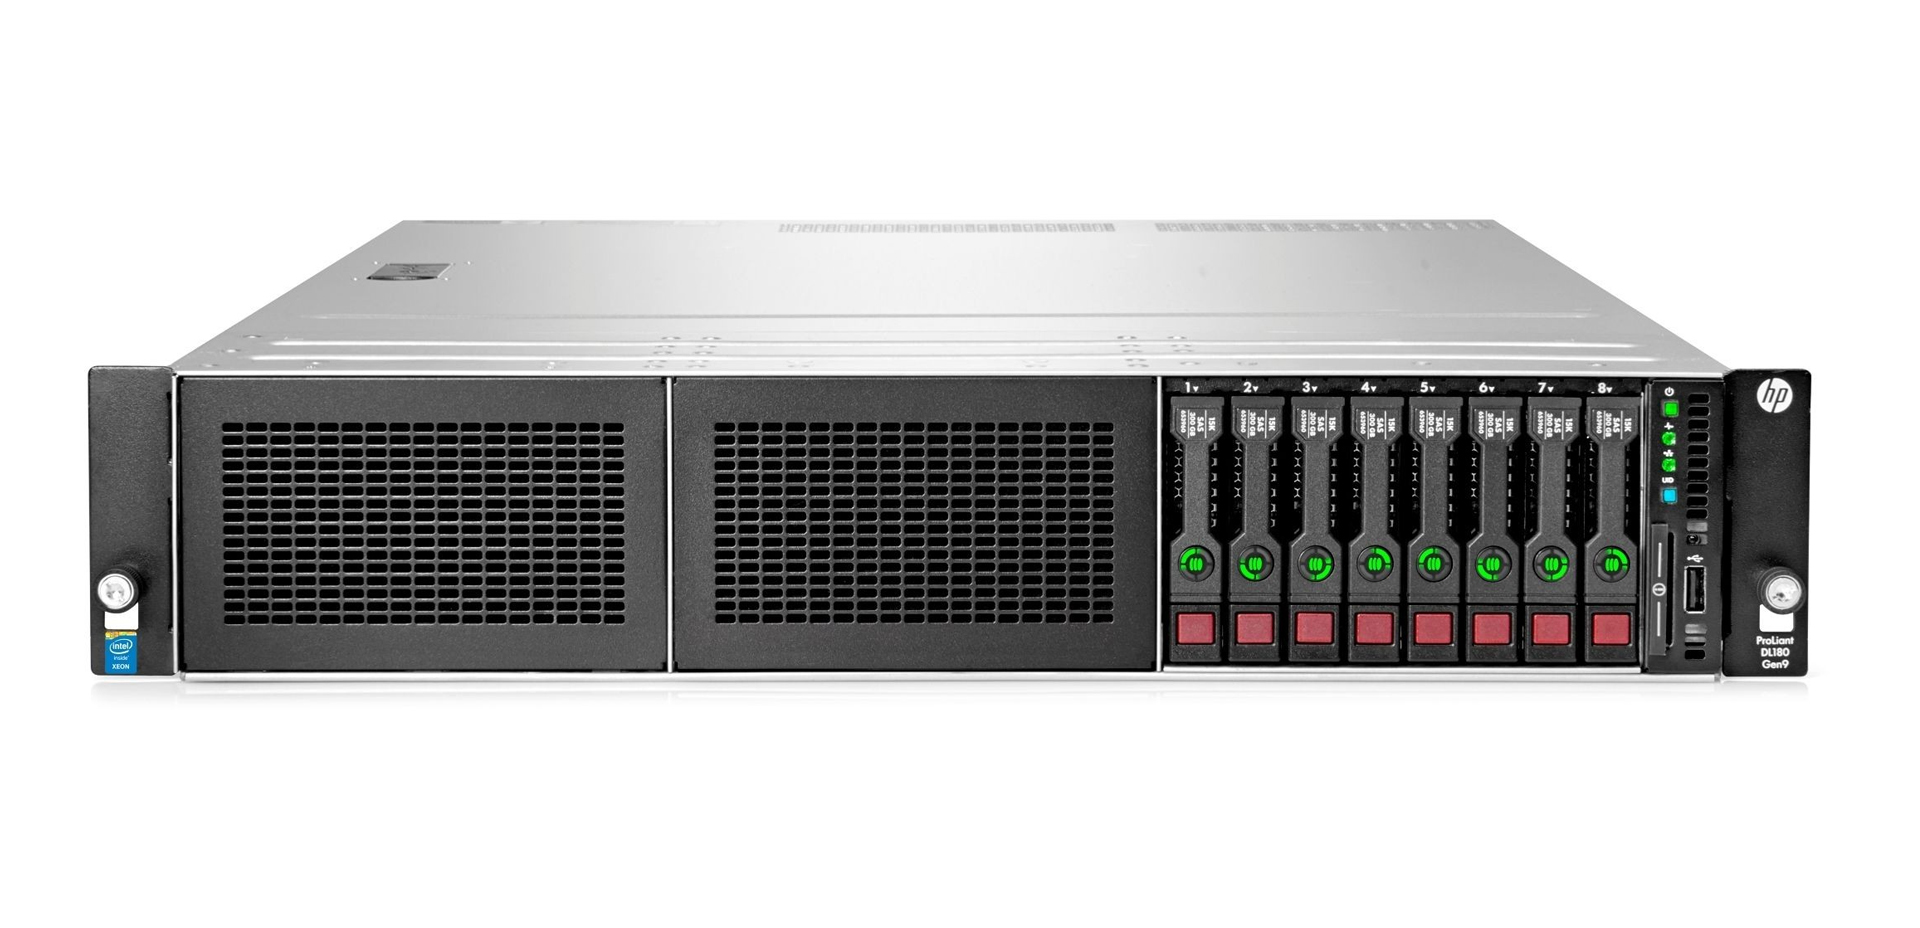 HPE ProLiant DL380 Gen9 Server 8SFF